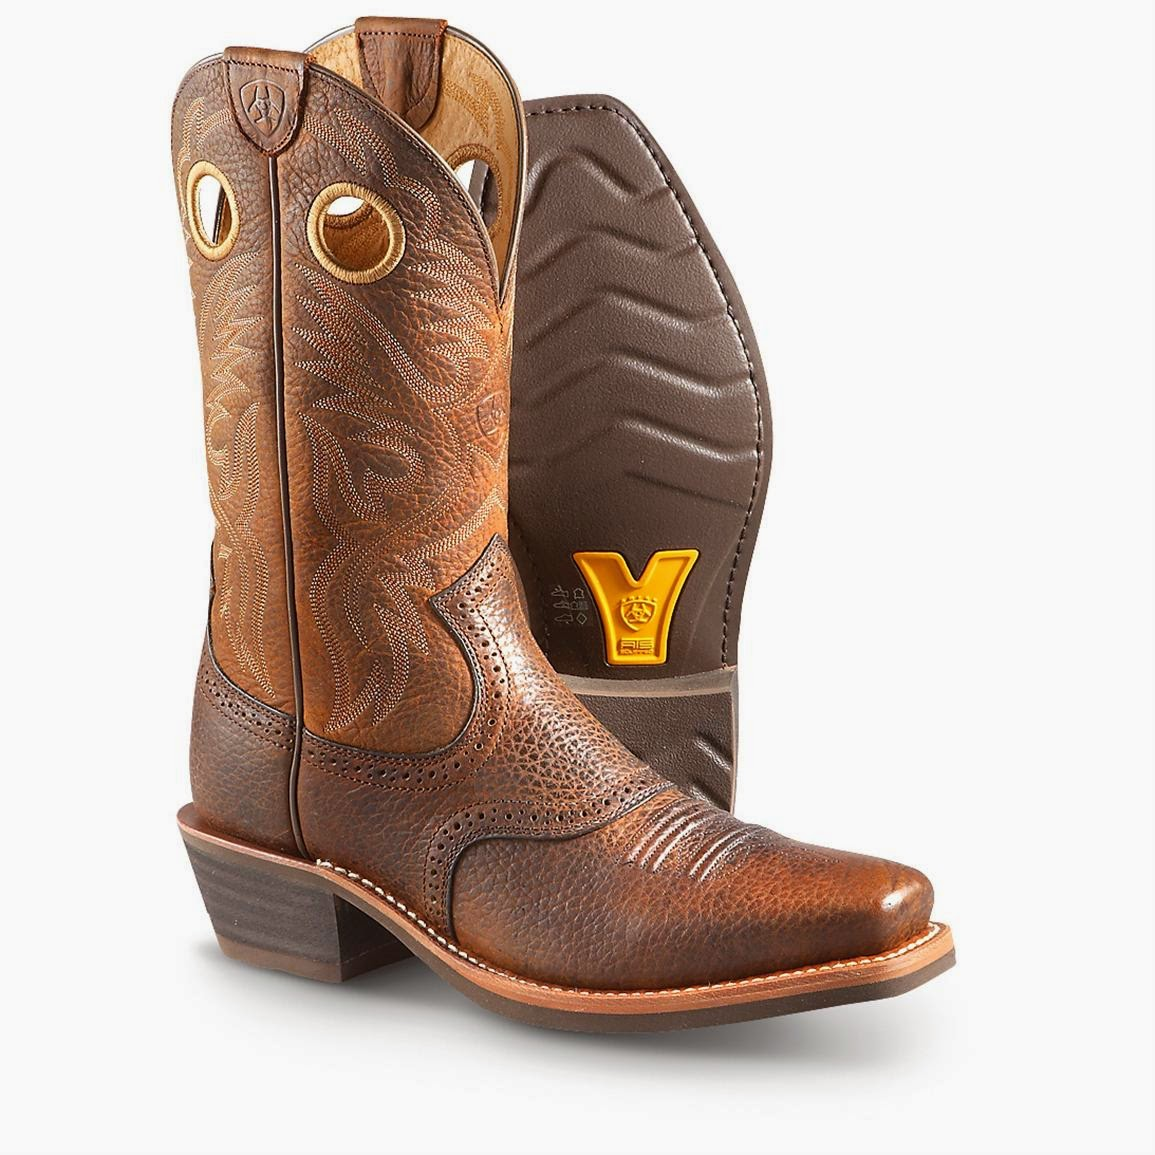 Mens Ariat Boots Clearance Coltford Boots